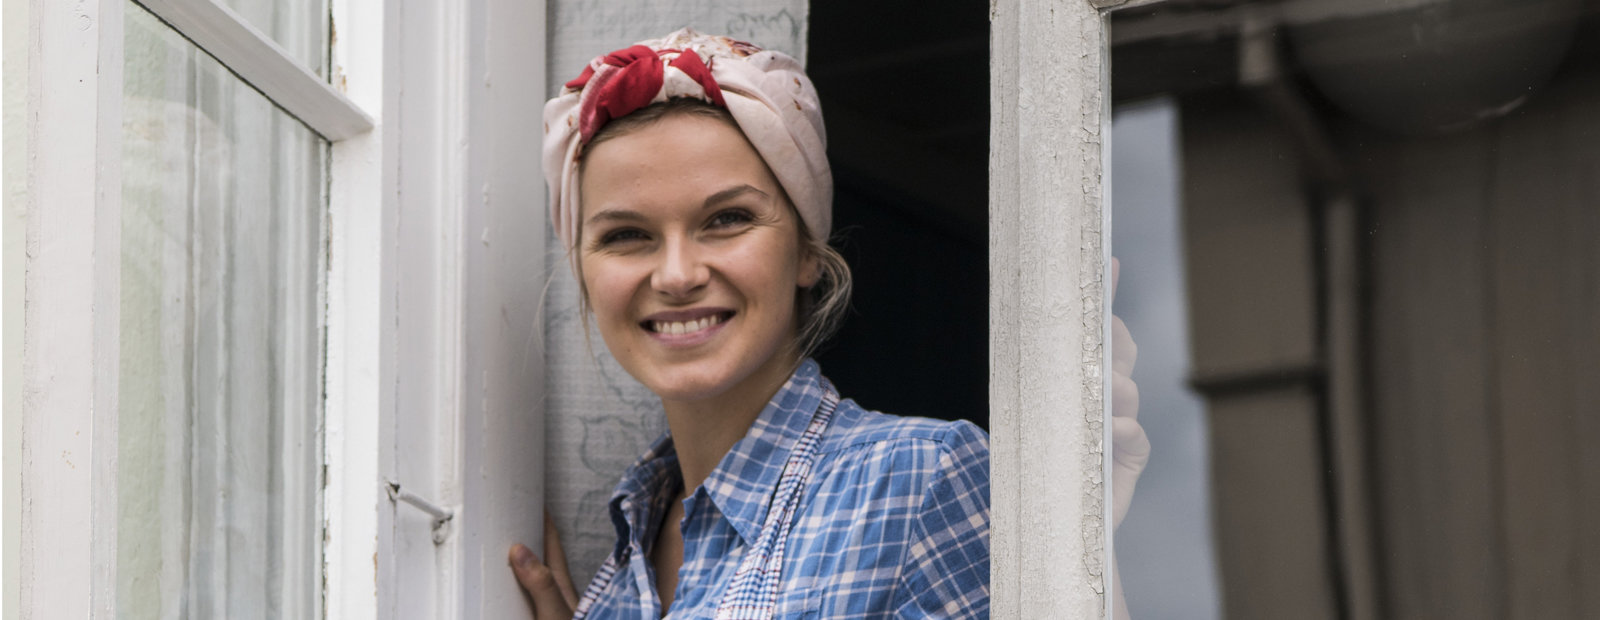 Young woman with a head scarf and apron smiling out of an open window.